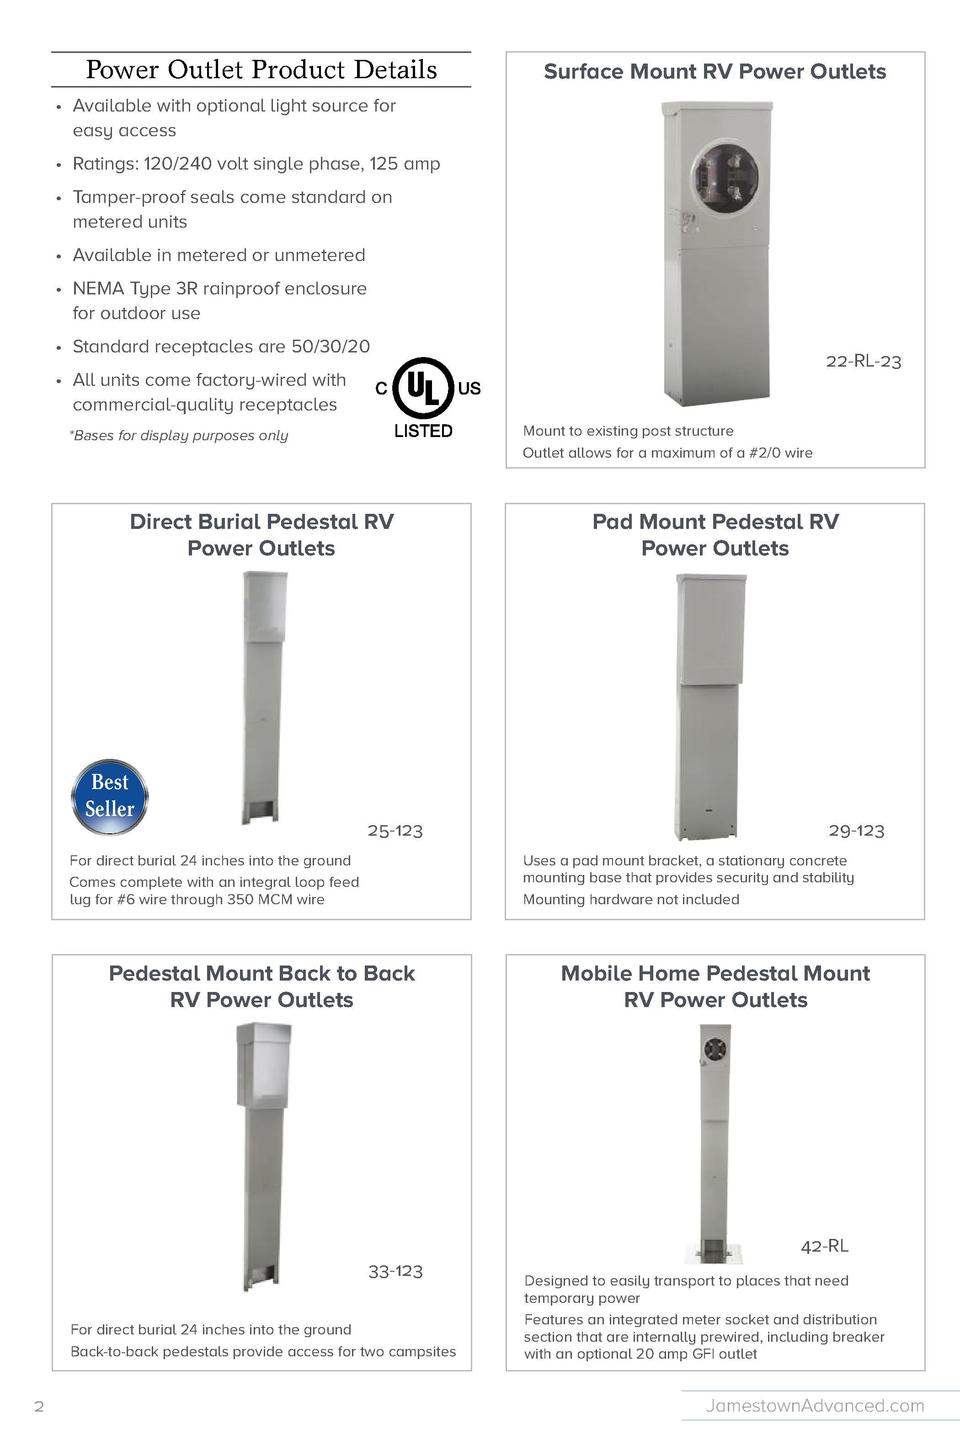 Power Outlet Product Details  Surface Mount RV Power Outlets  Access Door Lighted RV Power Outlets  Retro Kits      Availa...